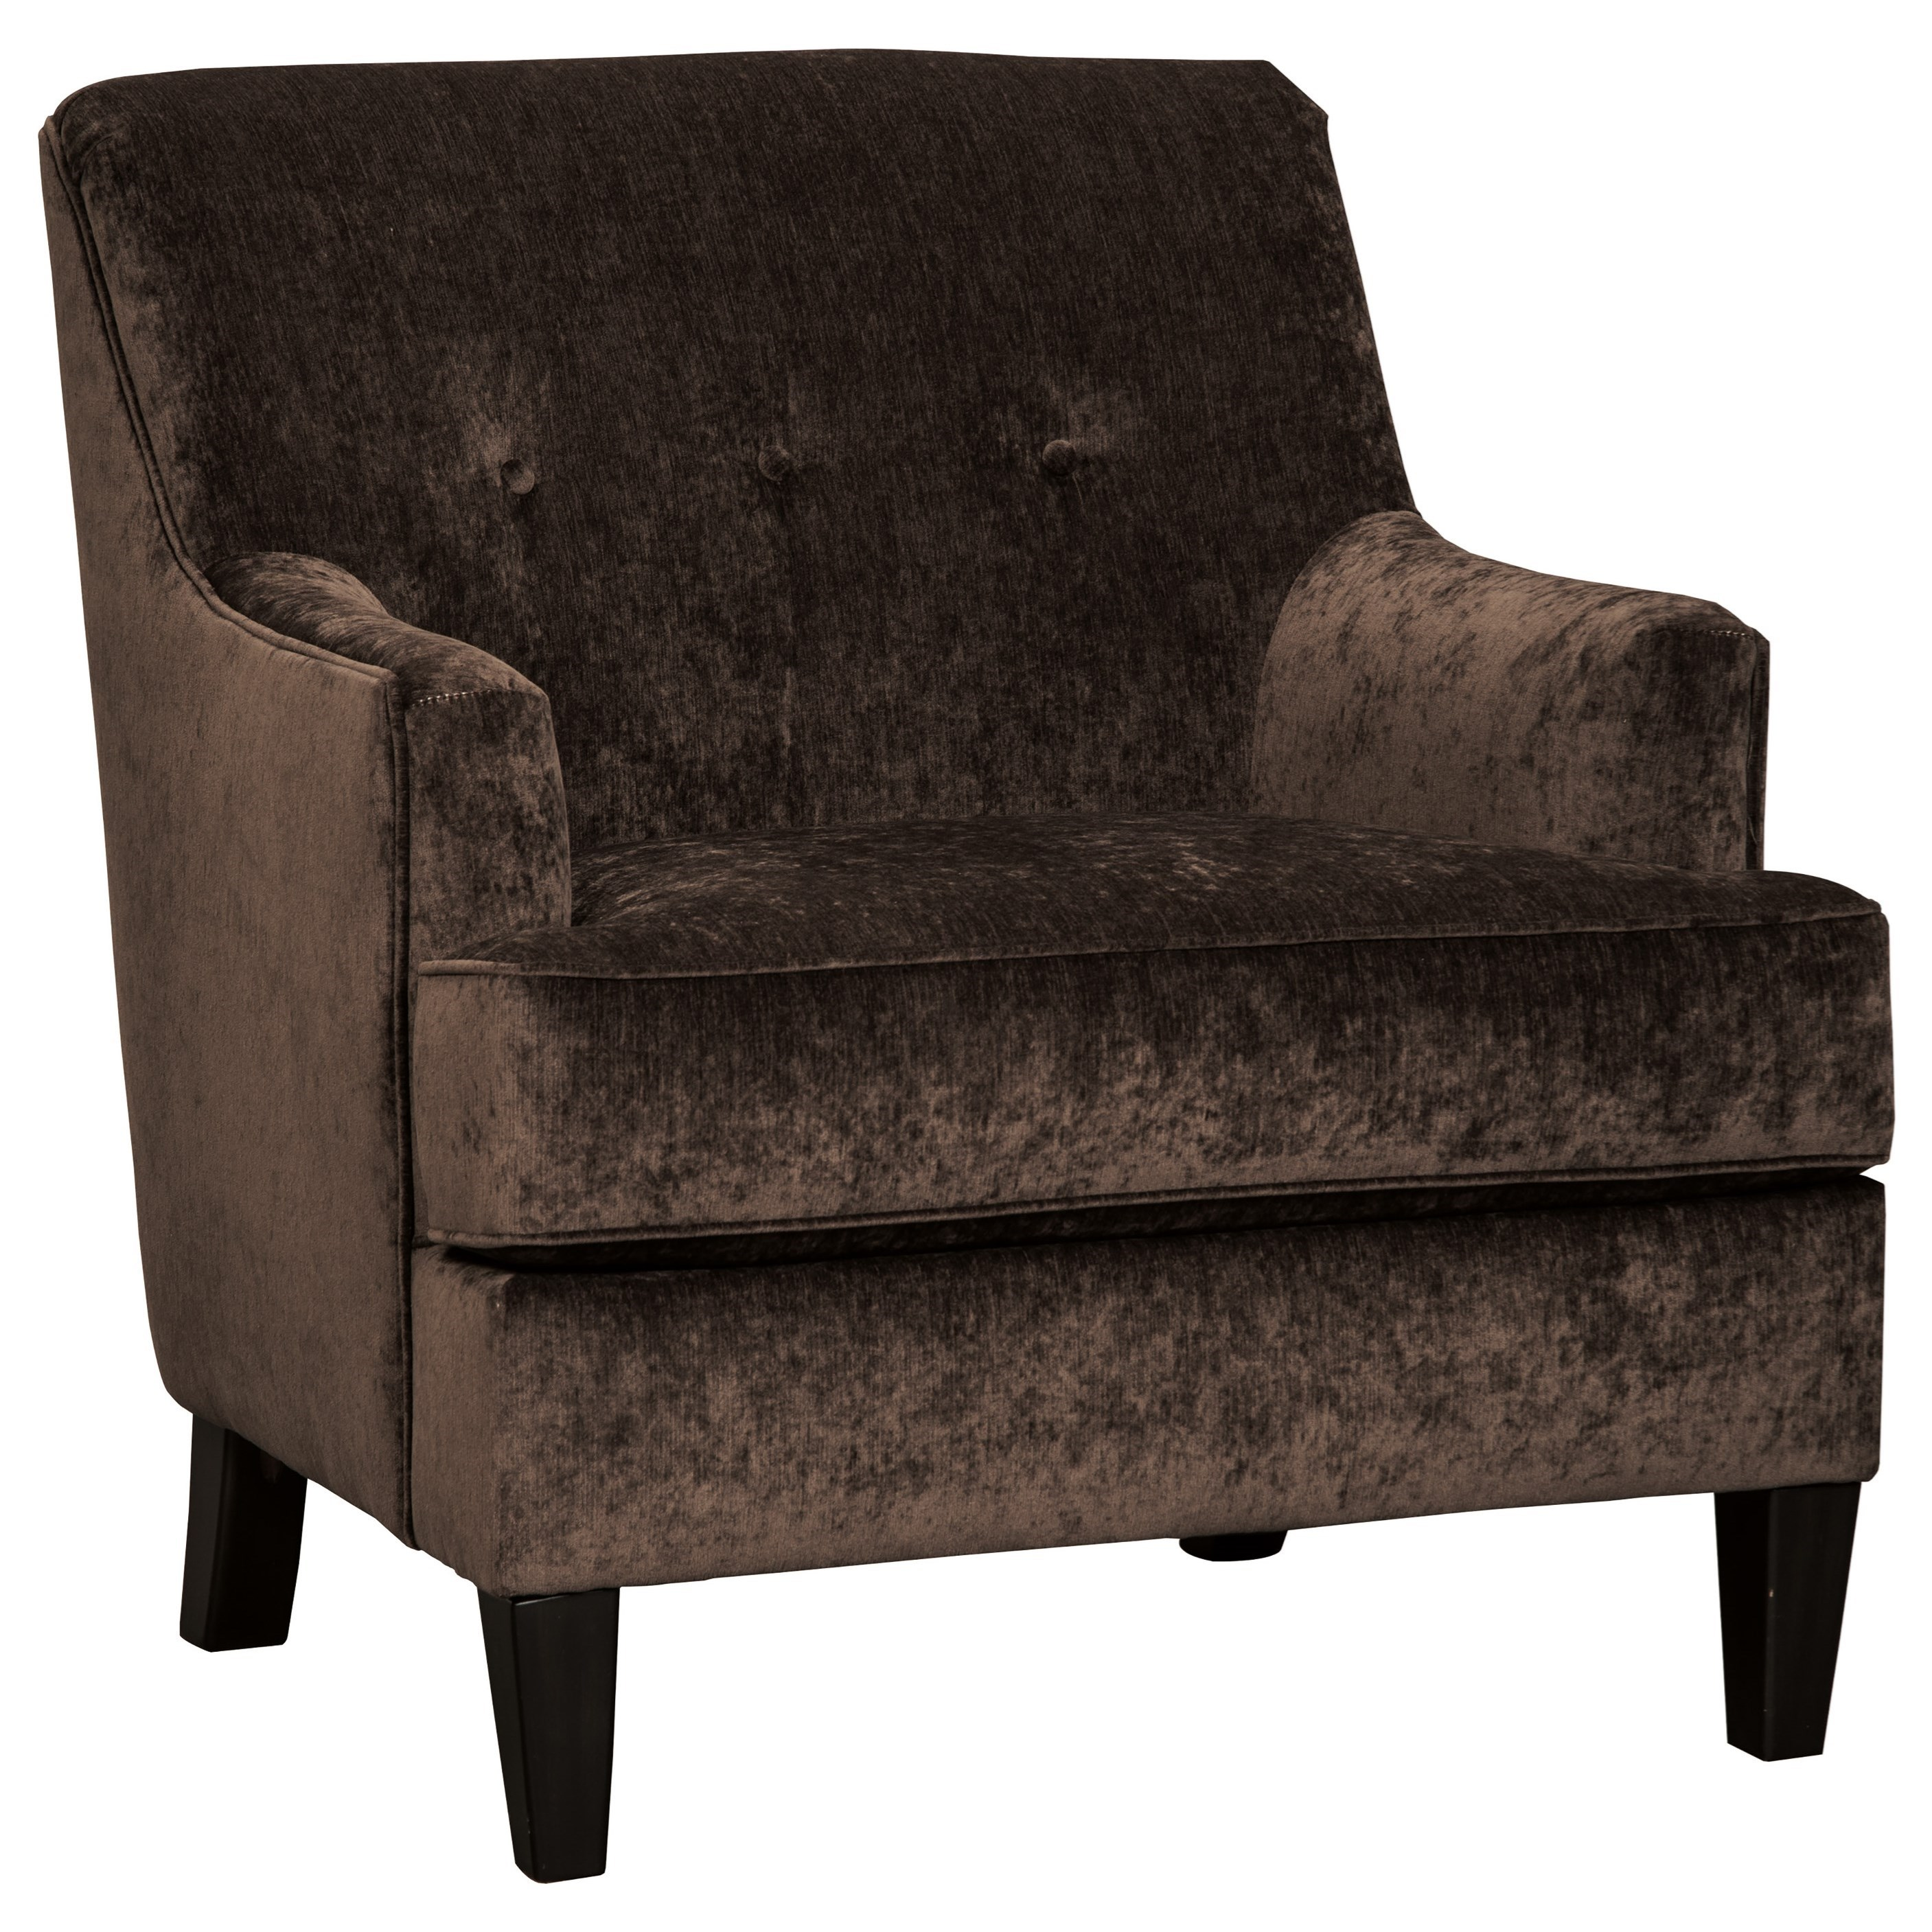 Benchcraft carlinworth accent chair item number 8440122